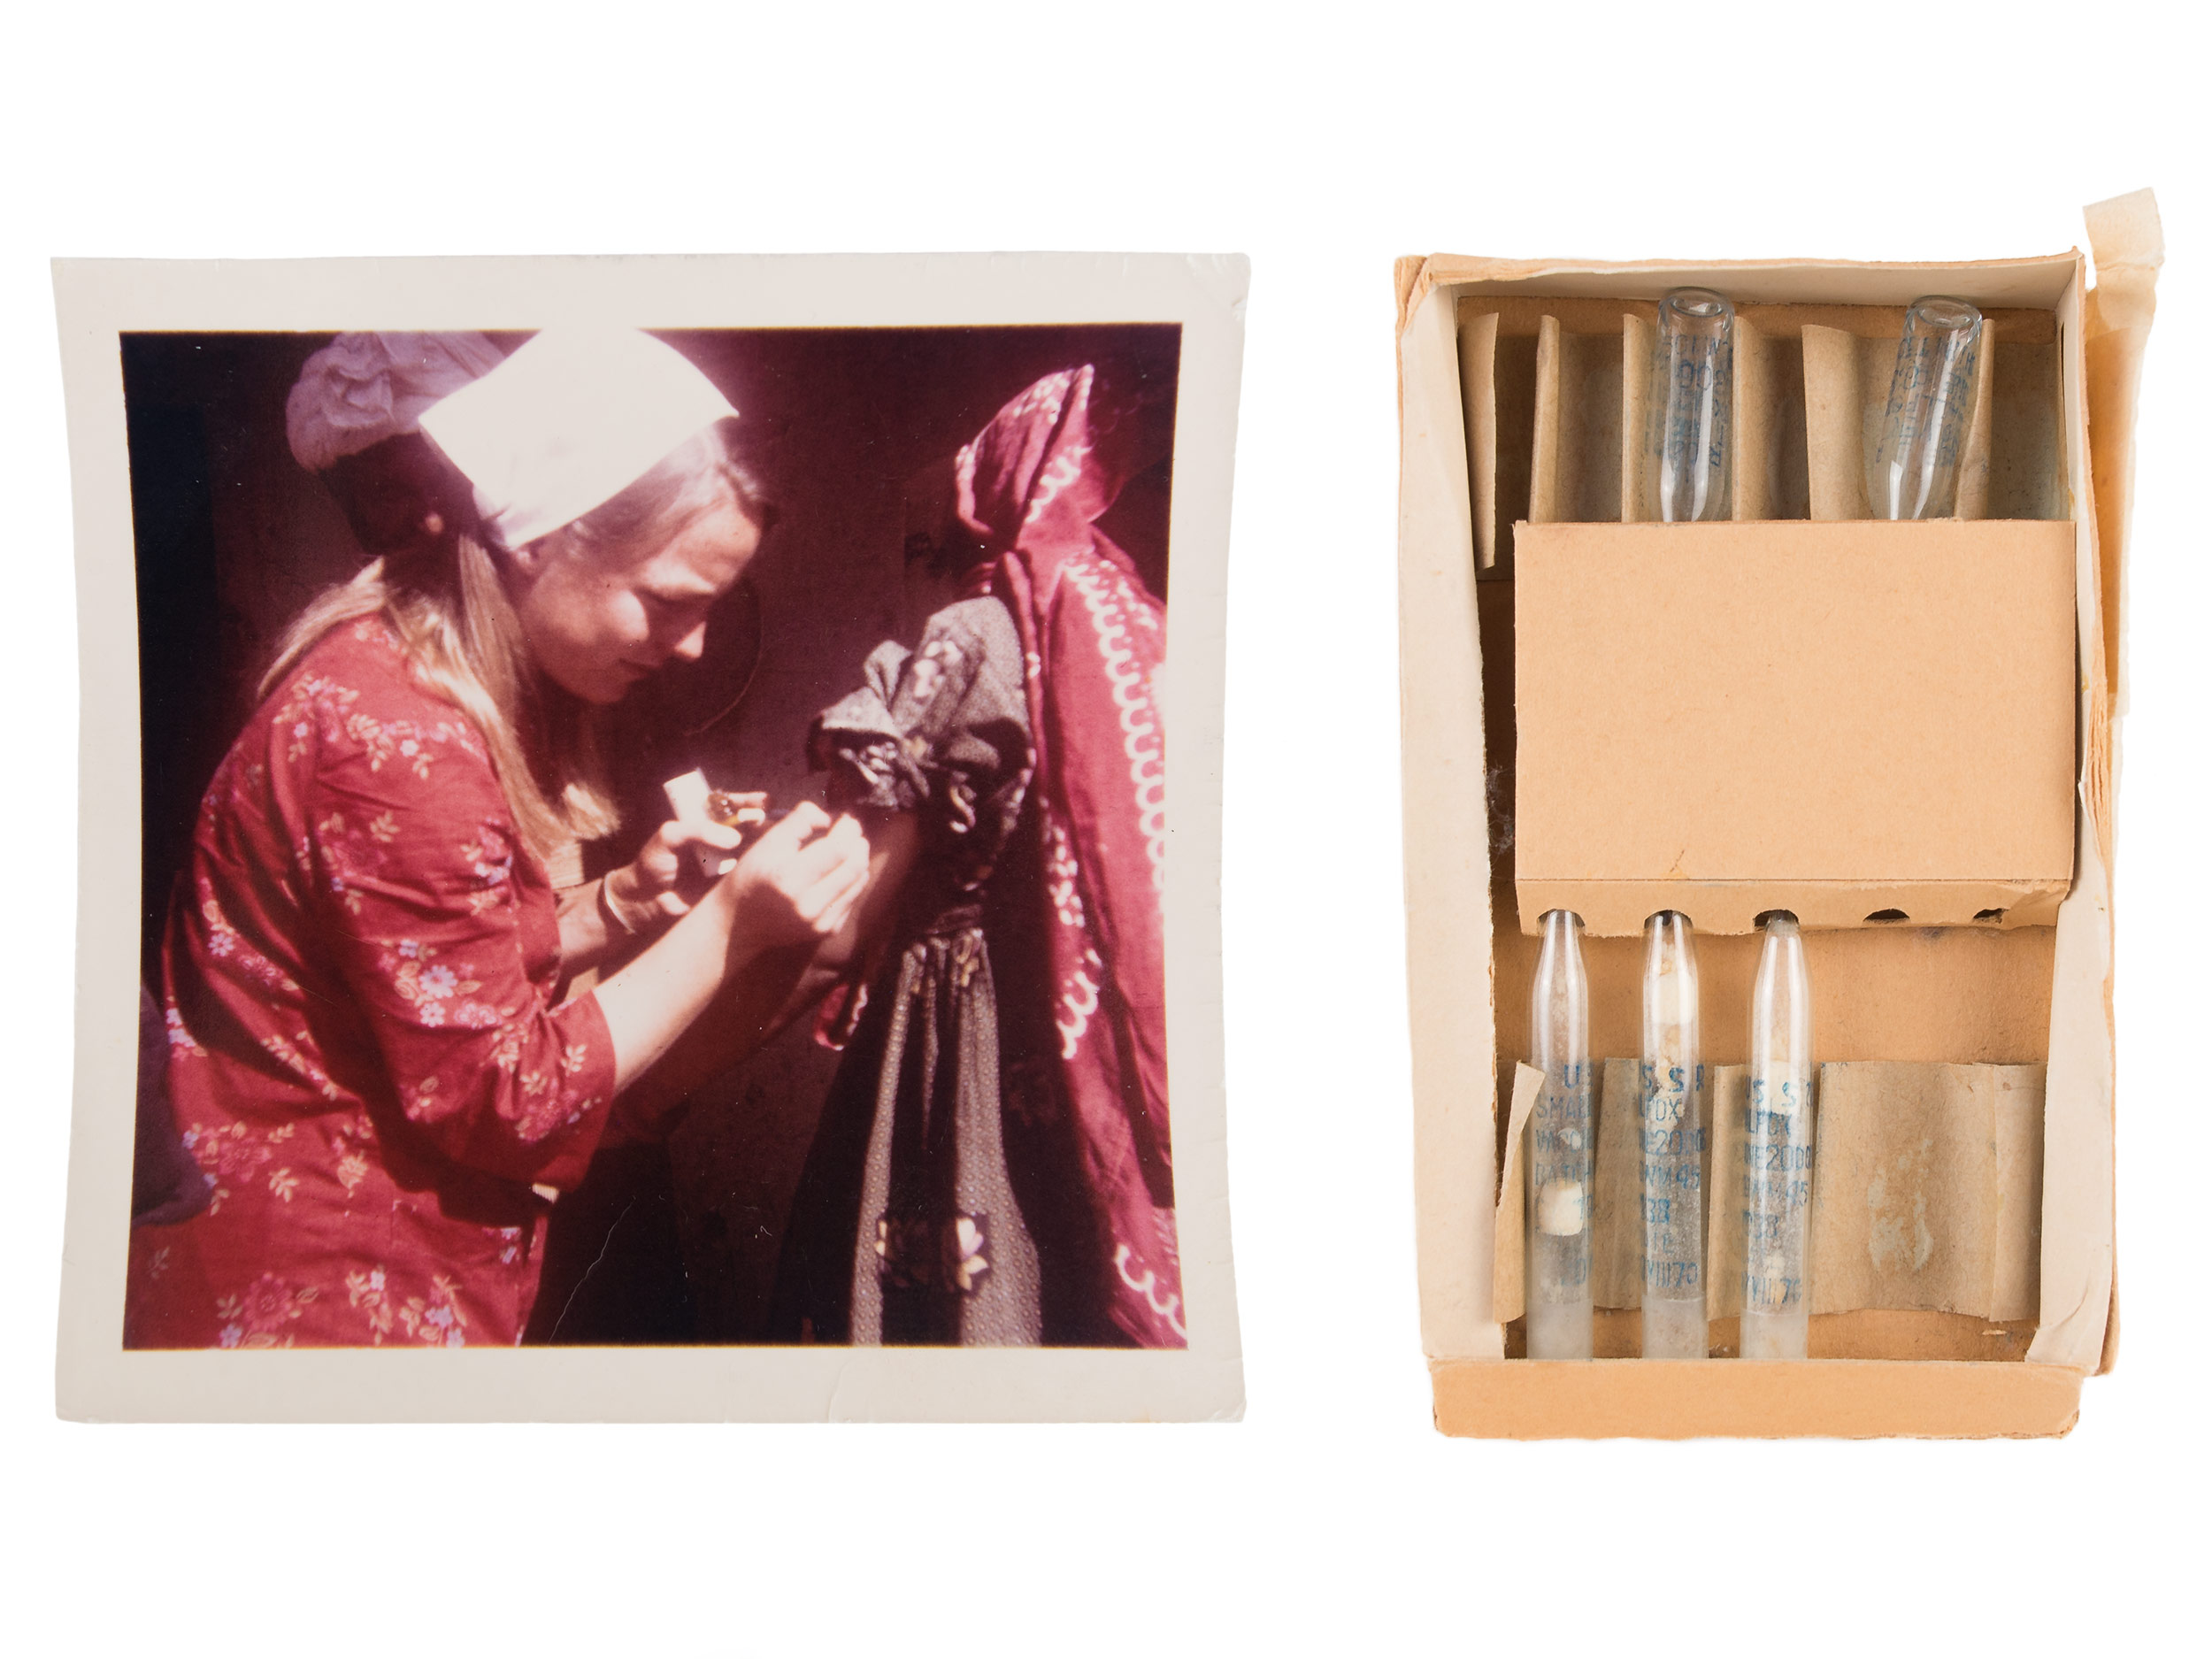 Vials of smallpox vaccine, ca. 1969–1970